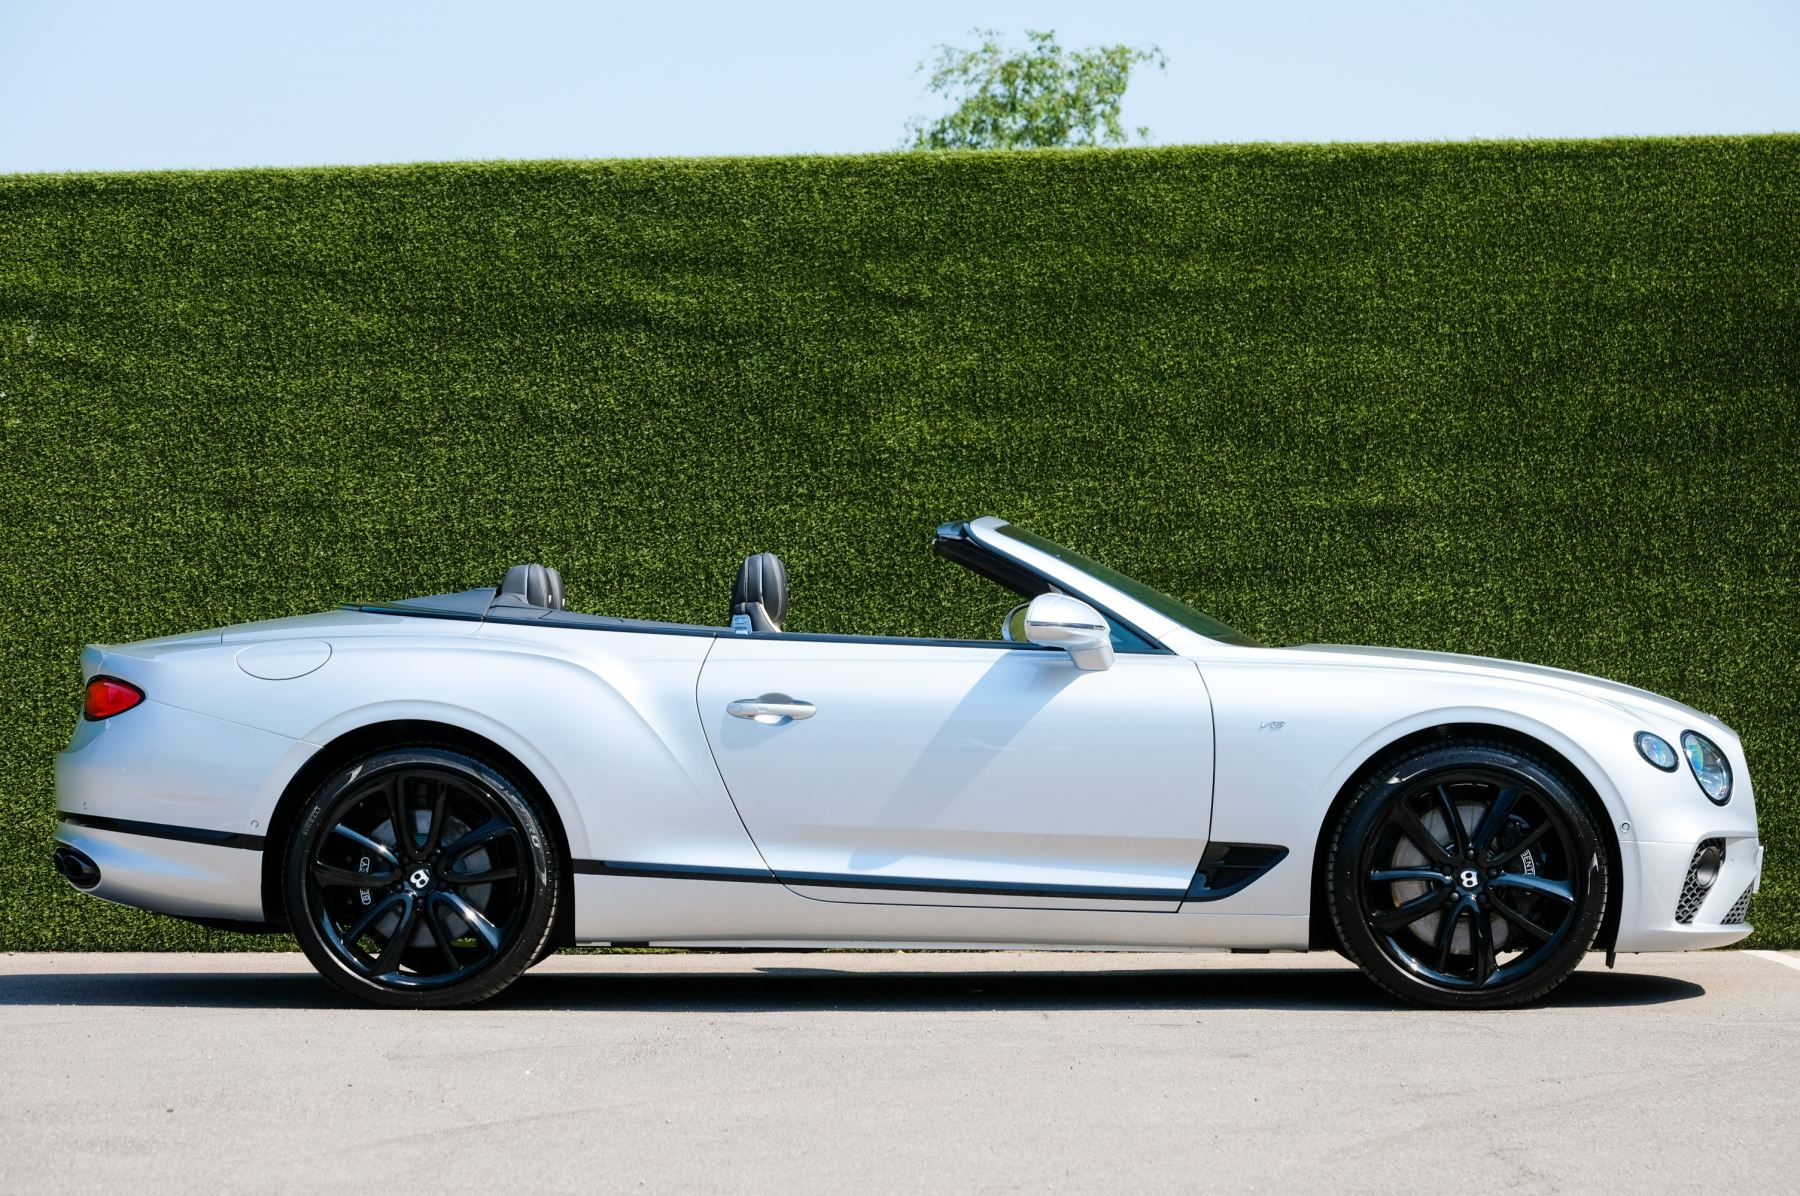 Bentley Continental GTC 4.0 V8 - Mulliner Driving Specification and Blackline Specification with 22 Inch Alloys image 3